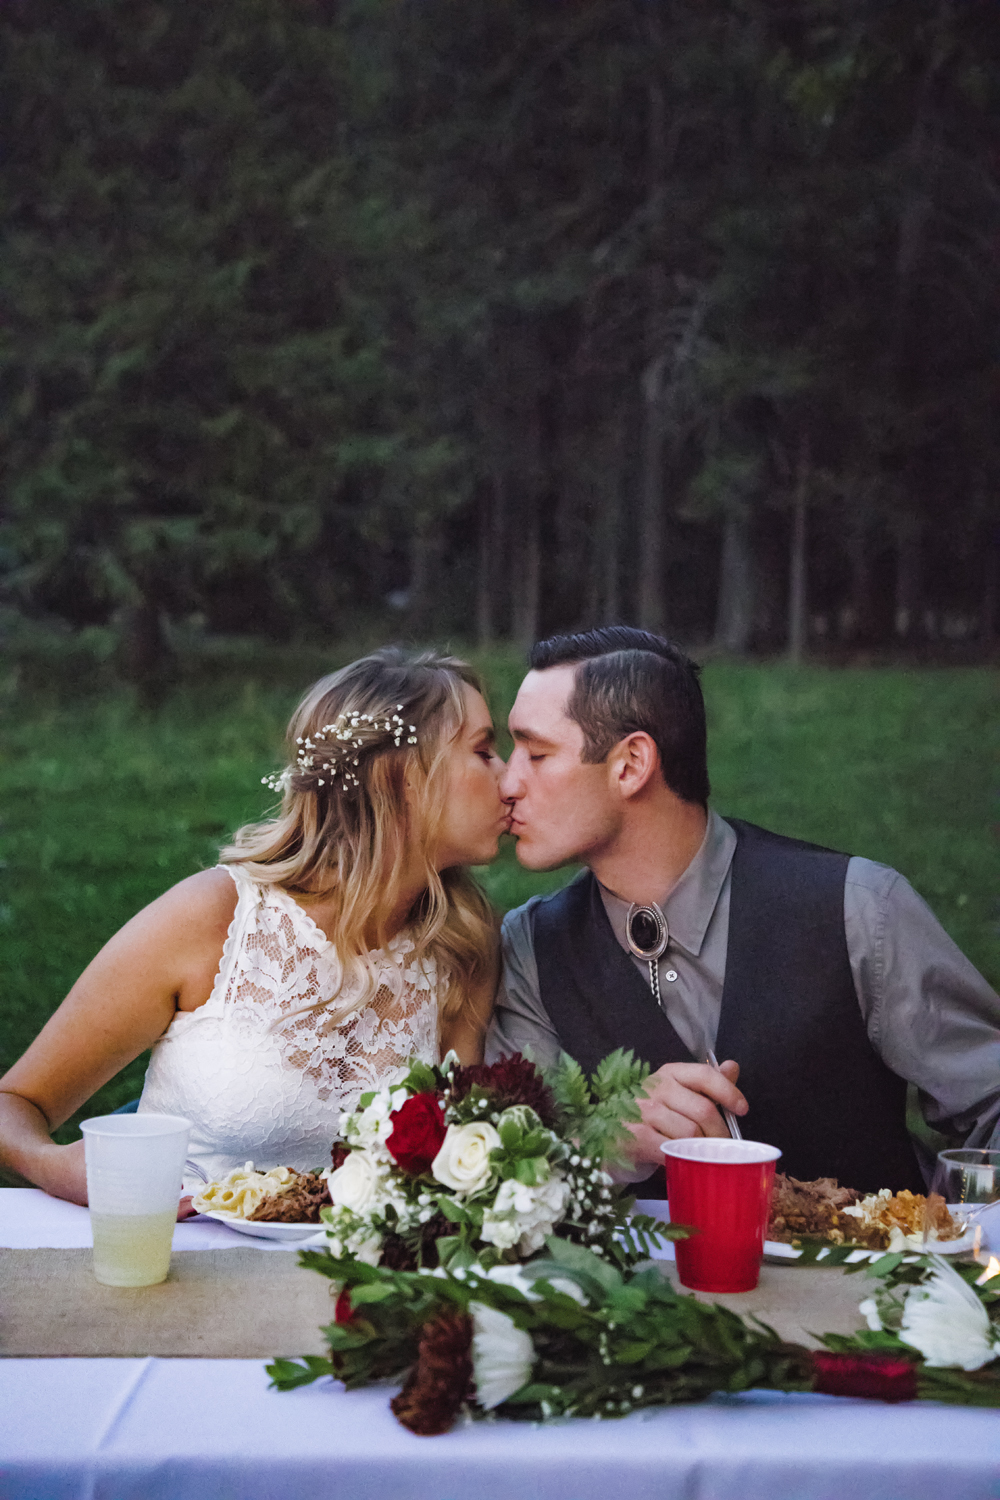 Rustic-Forest-Country-Wedding-Chico-CARustic-Forest-Country-Wedding-Chico-CA2-2.jpg